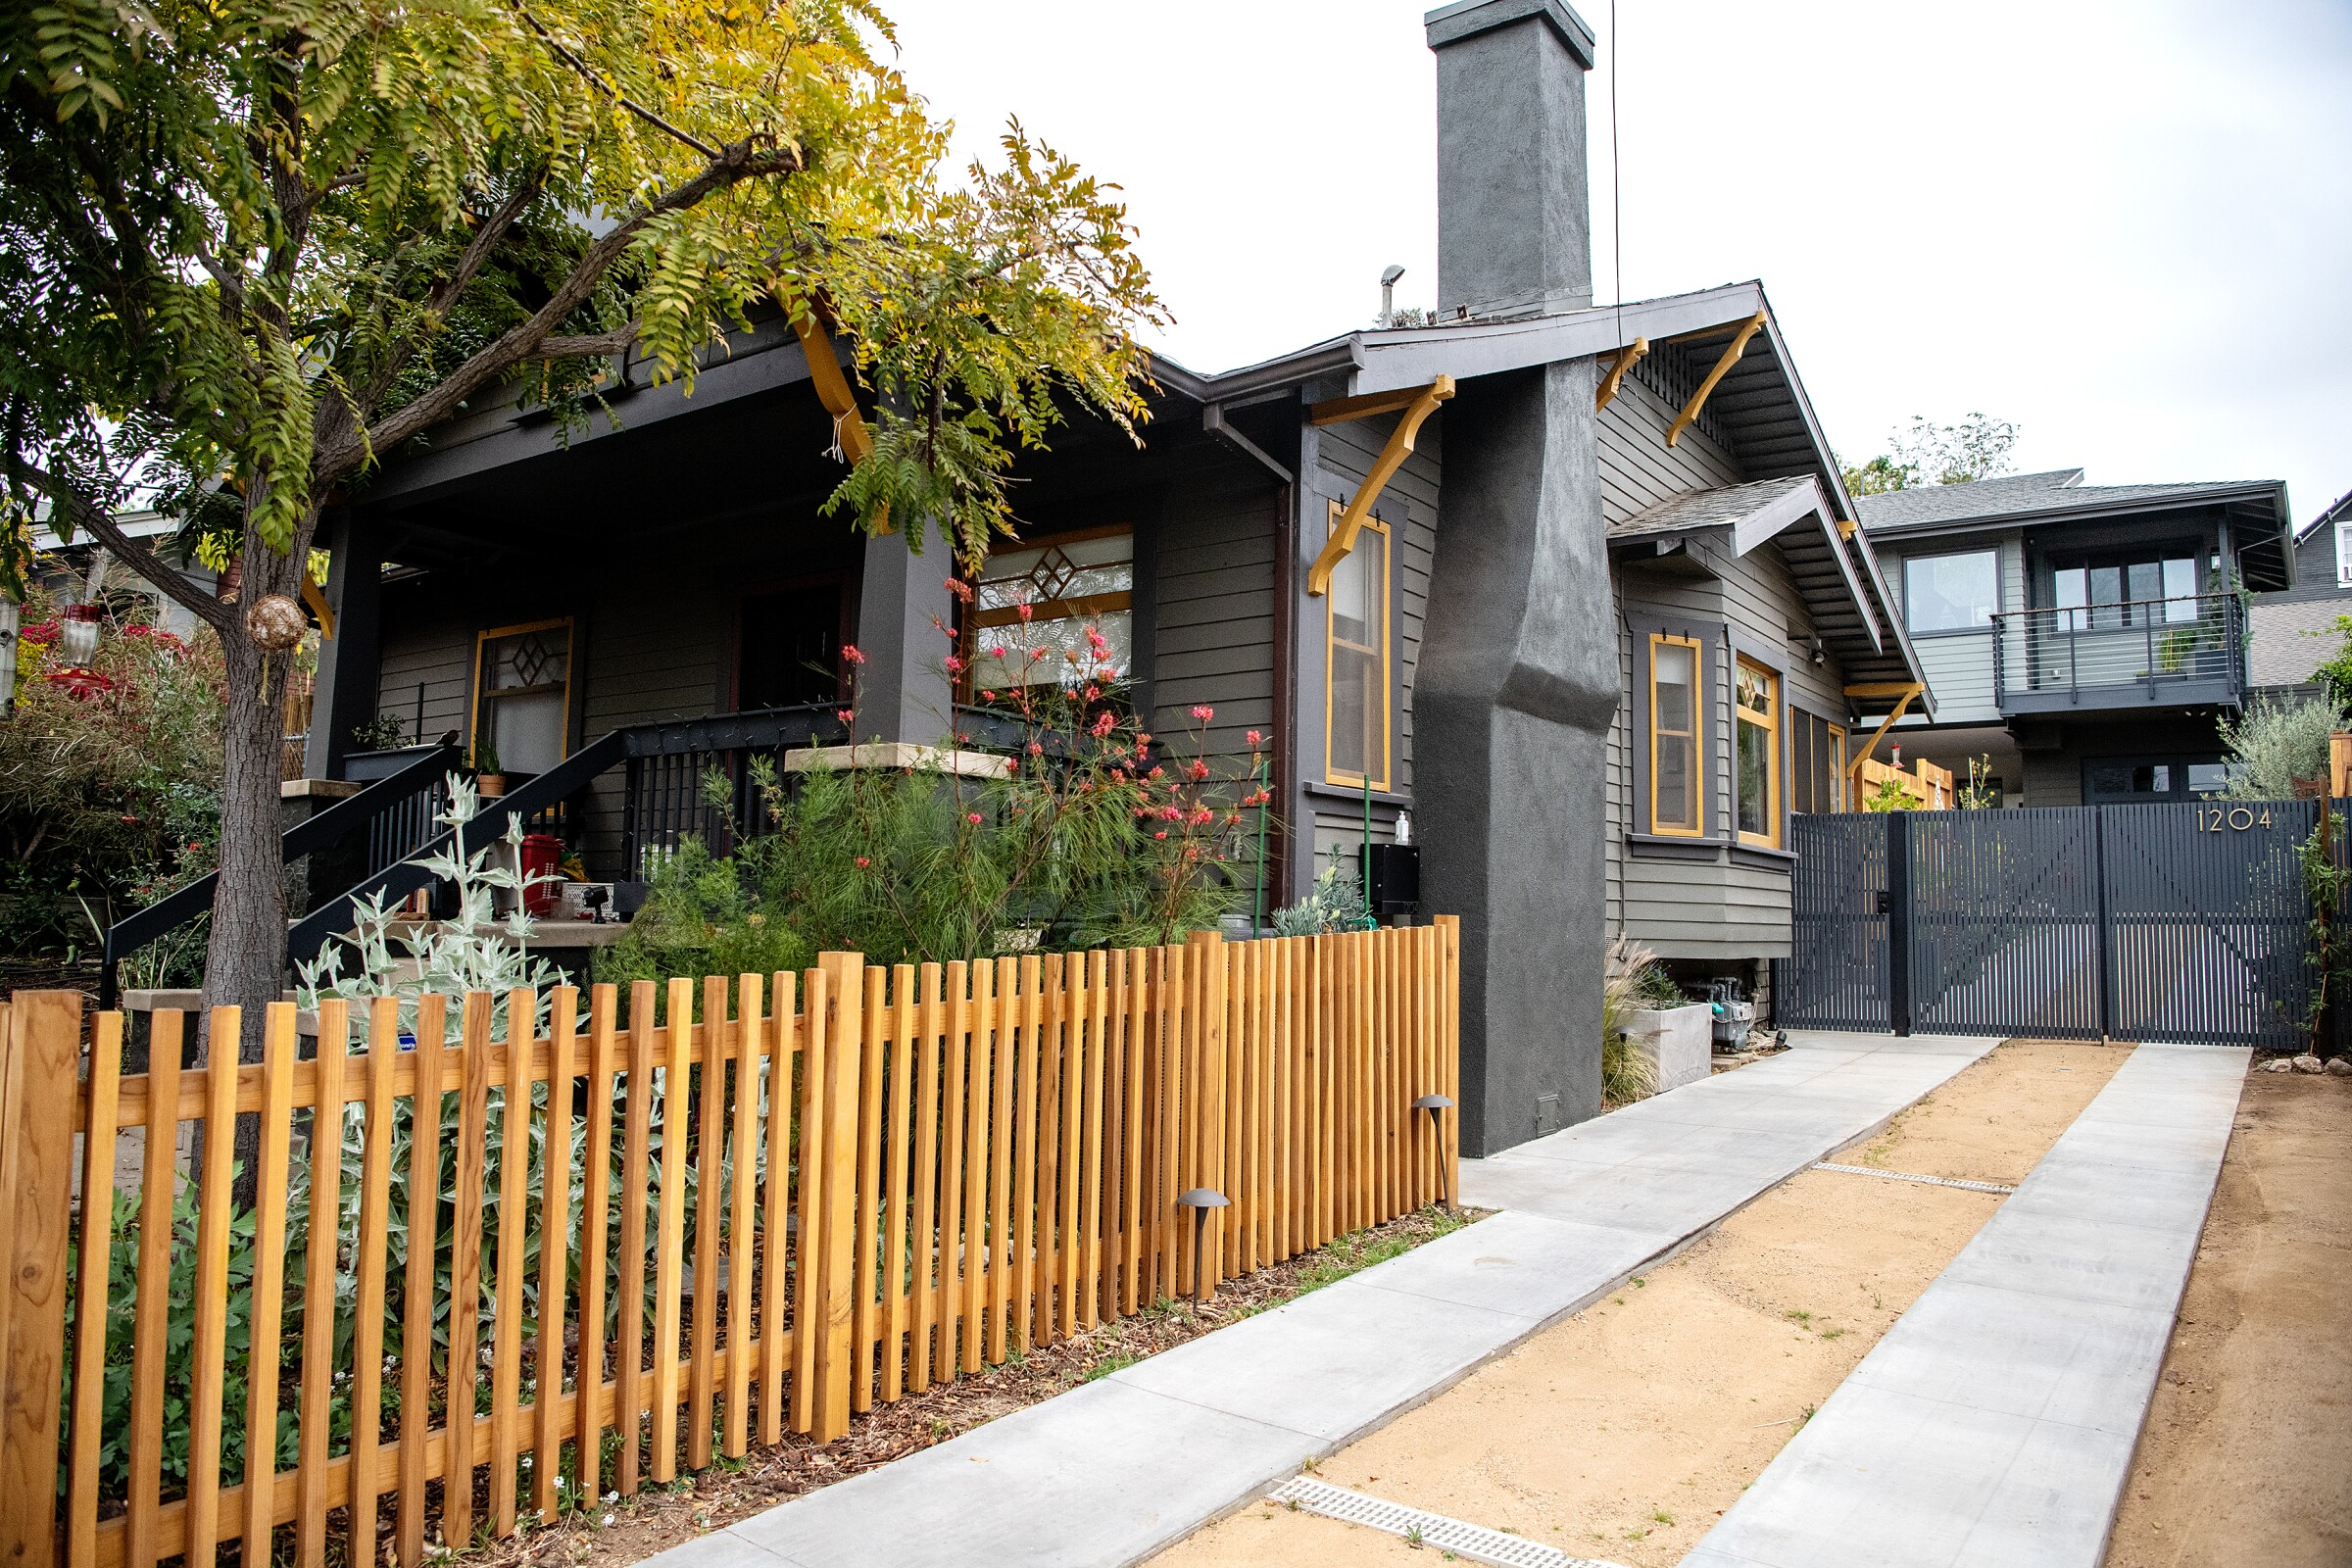 A gray house with yellow trim has a wood picket fence in the front yard and an accessory dwelling unit elevated behind it.